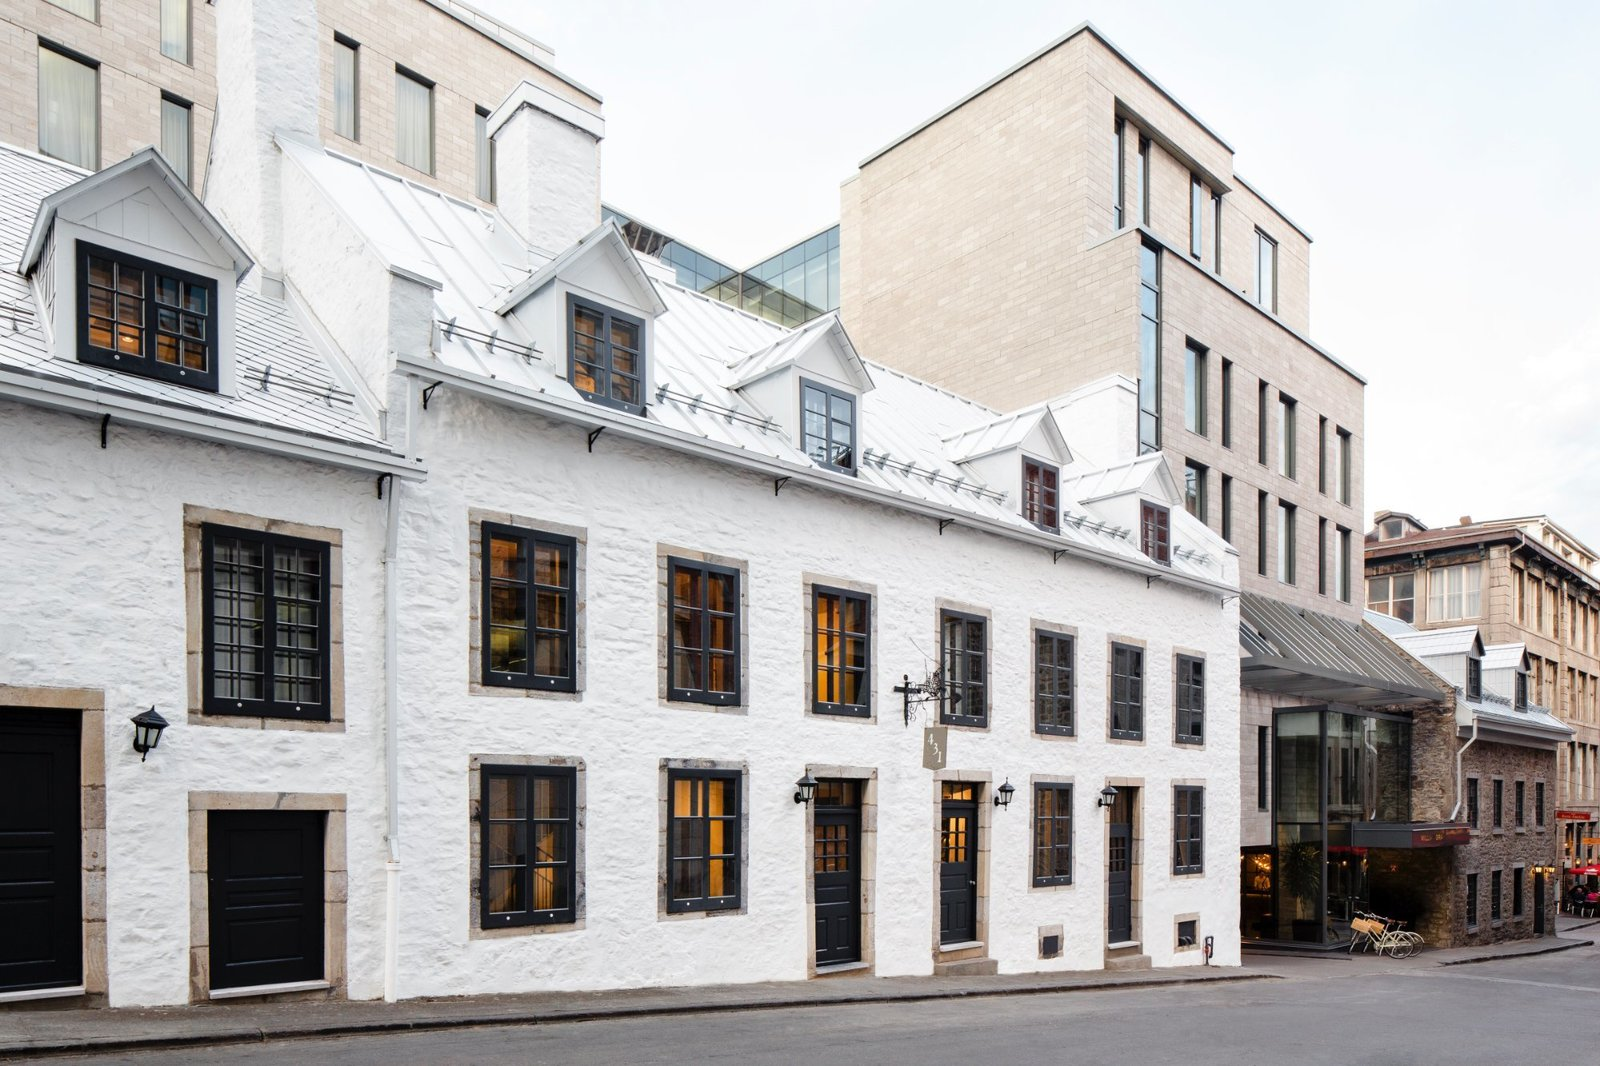 The innovative, inspired Old Montréal hotel overlooks Place Jacques-Cartier and incorporates a contemporary glass structure with two historical buildings – Maison Edward-William-Gray and Maison Cherrier – dating back to the 18th century.